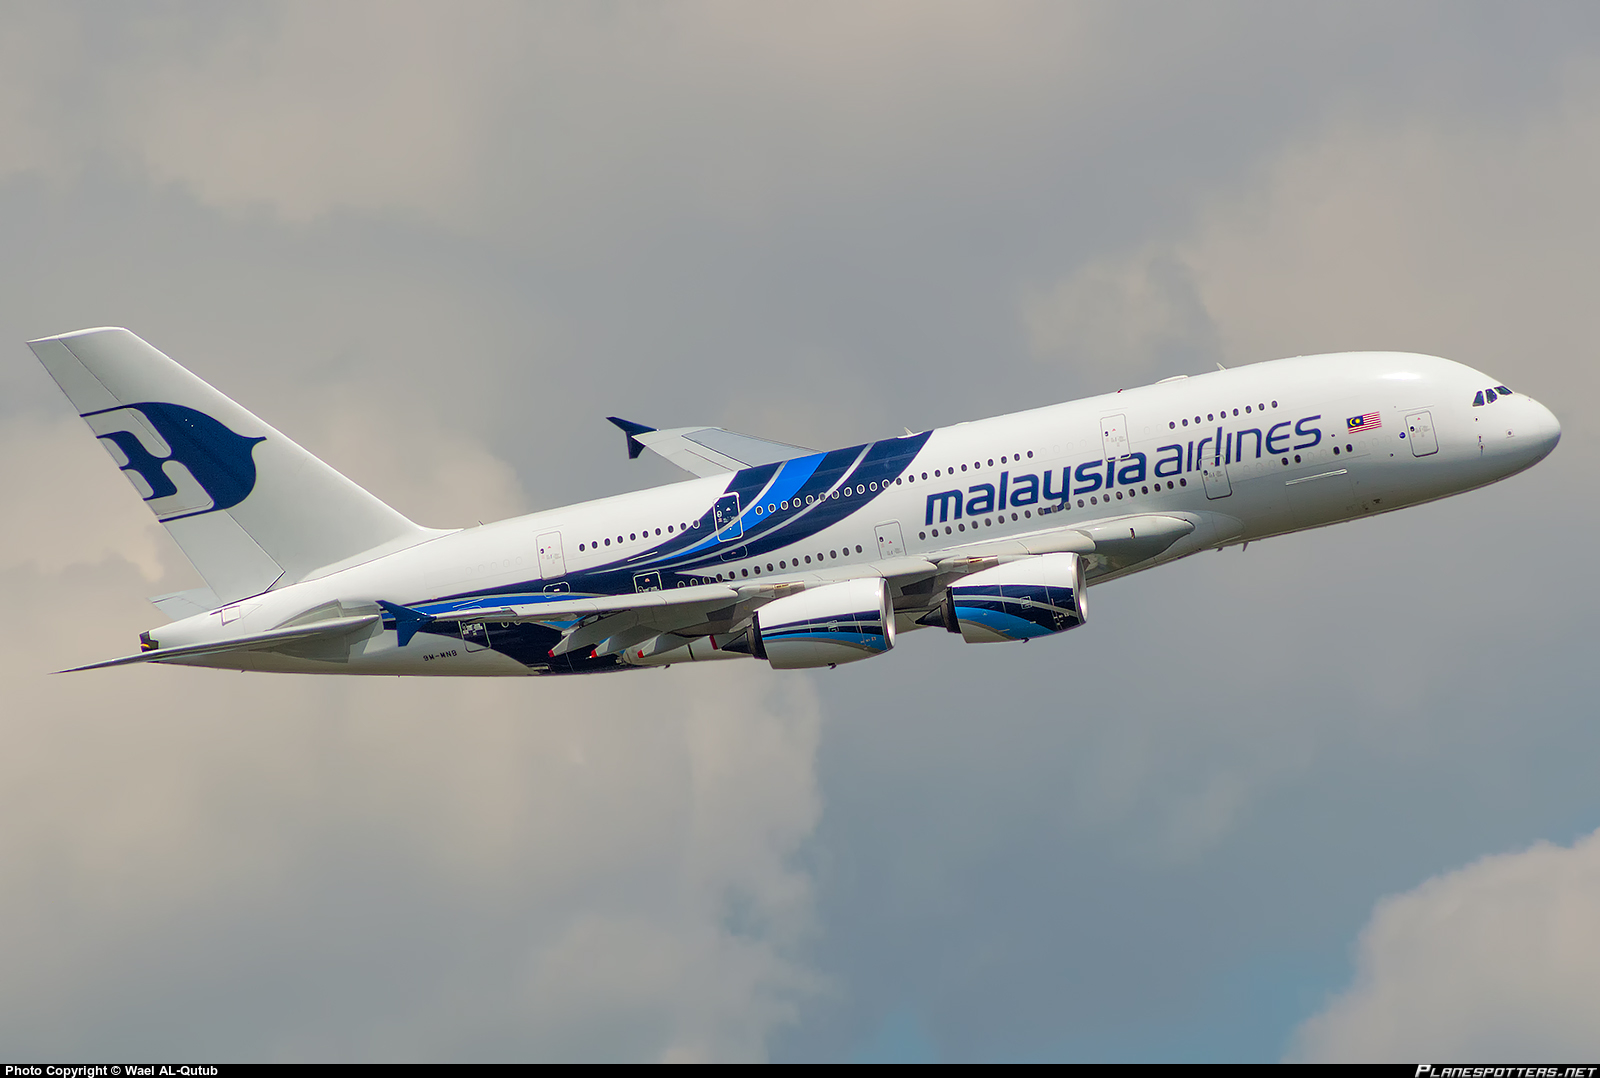 9m-mnb-malaysia-airlines-airbus-a380-841_PlanespottersNet_480707